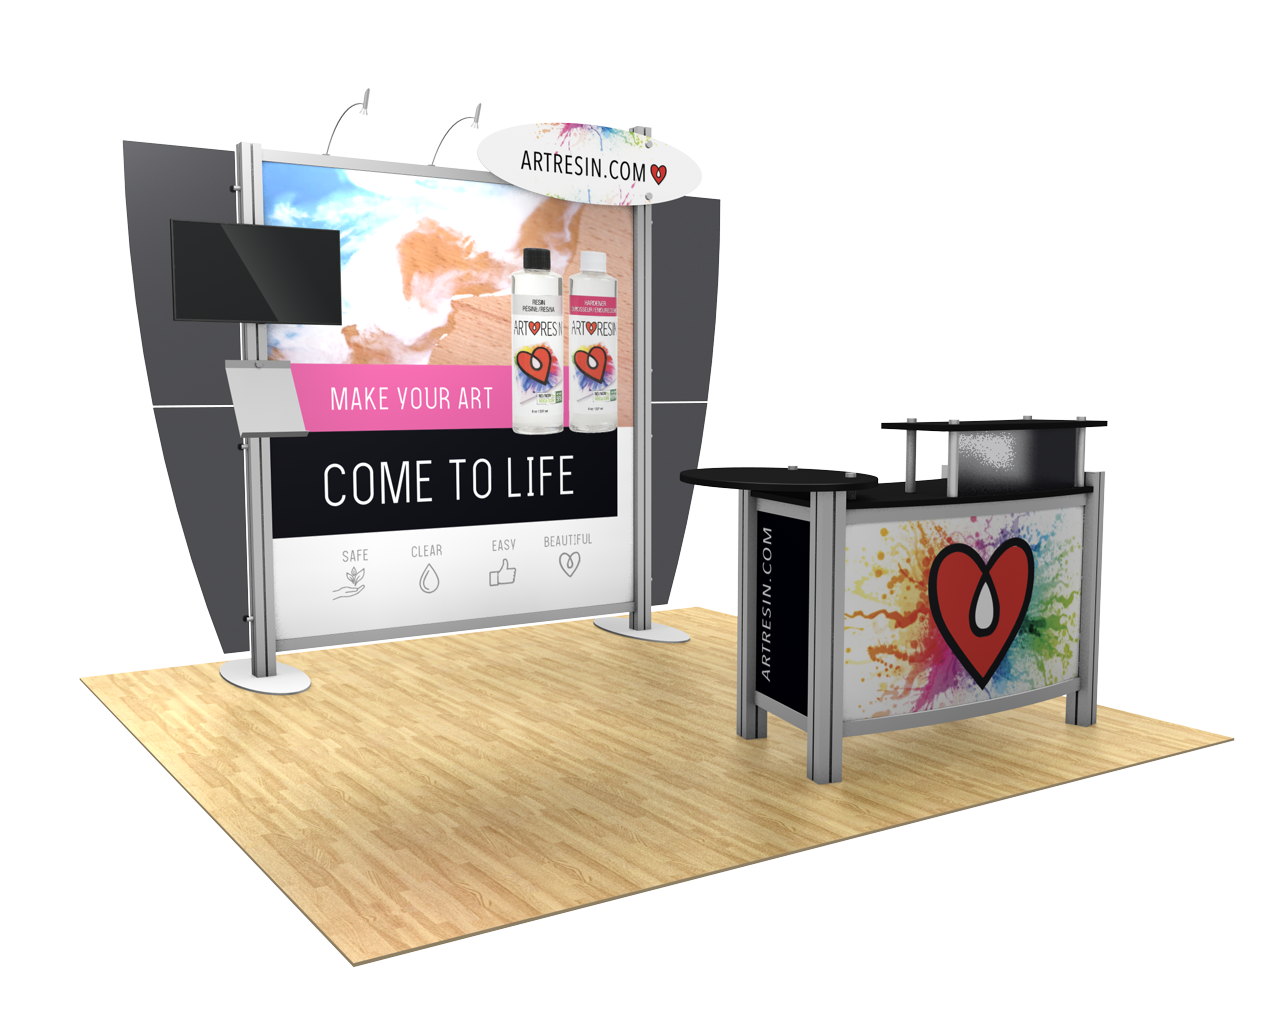 XVline Modular 10x10 Trade Show Display Kit - 10.01